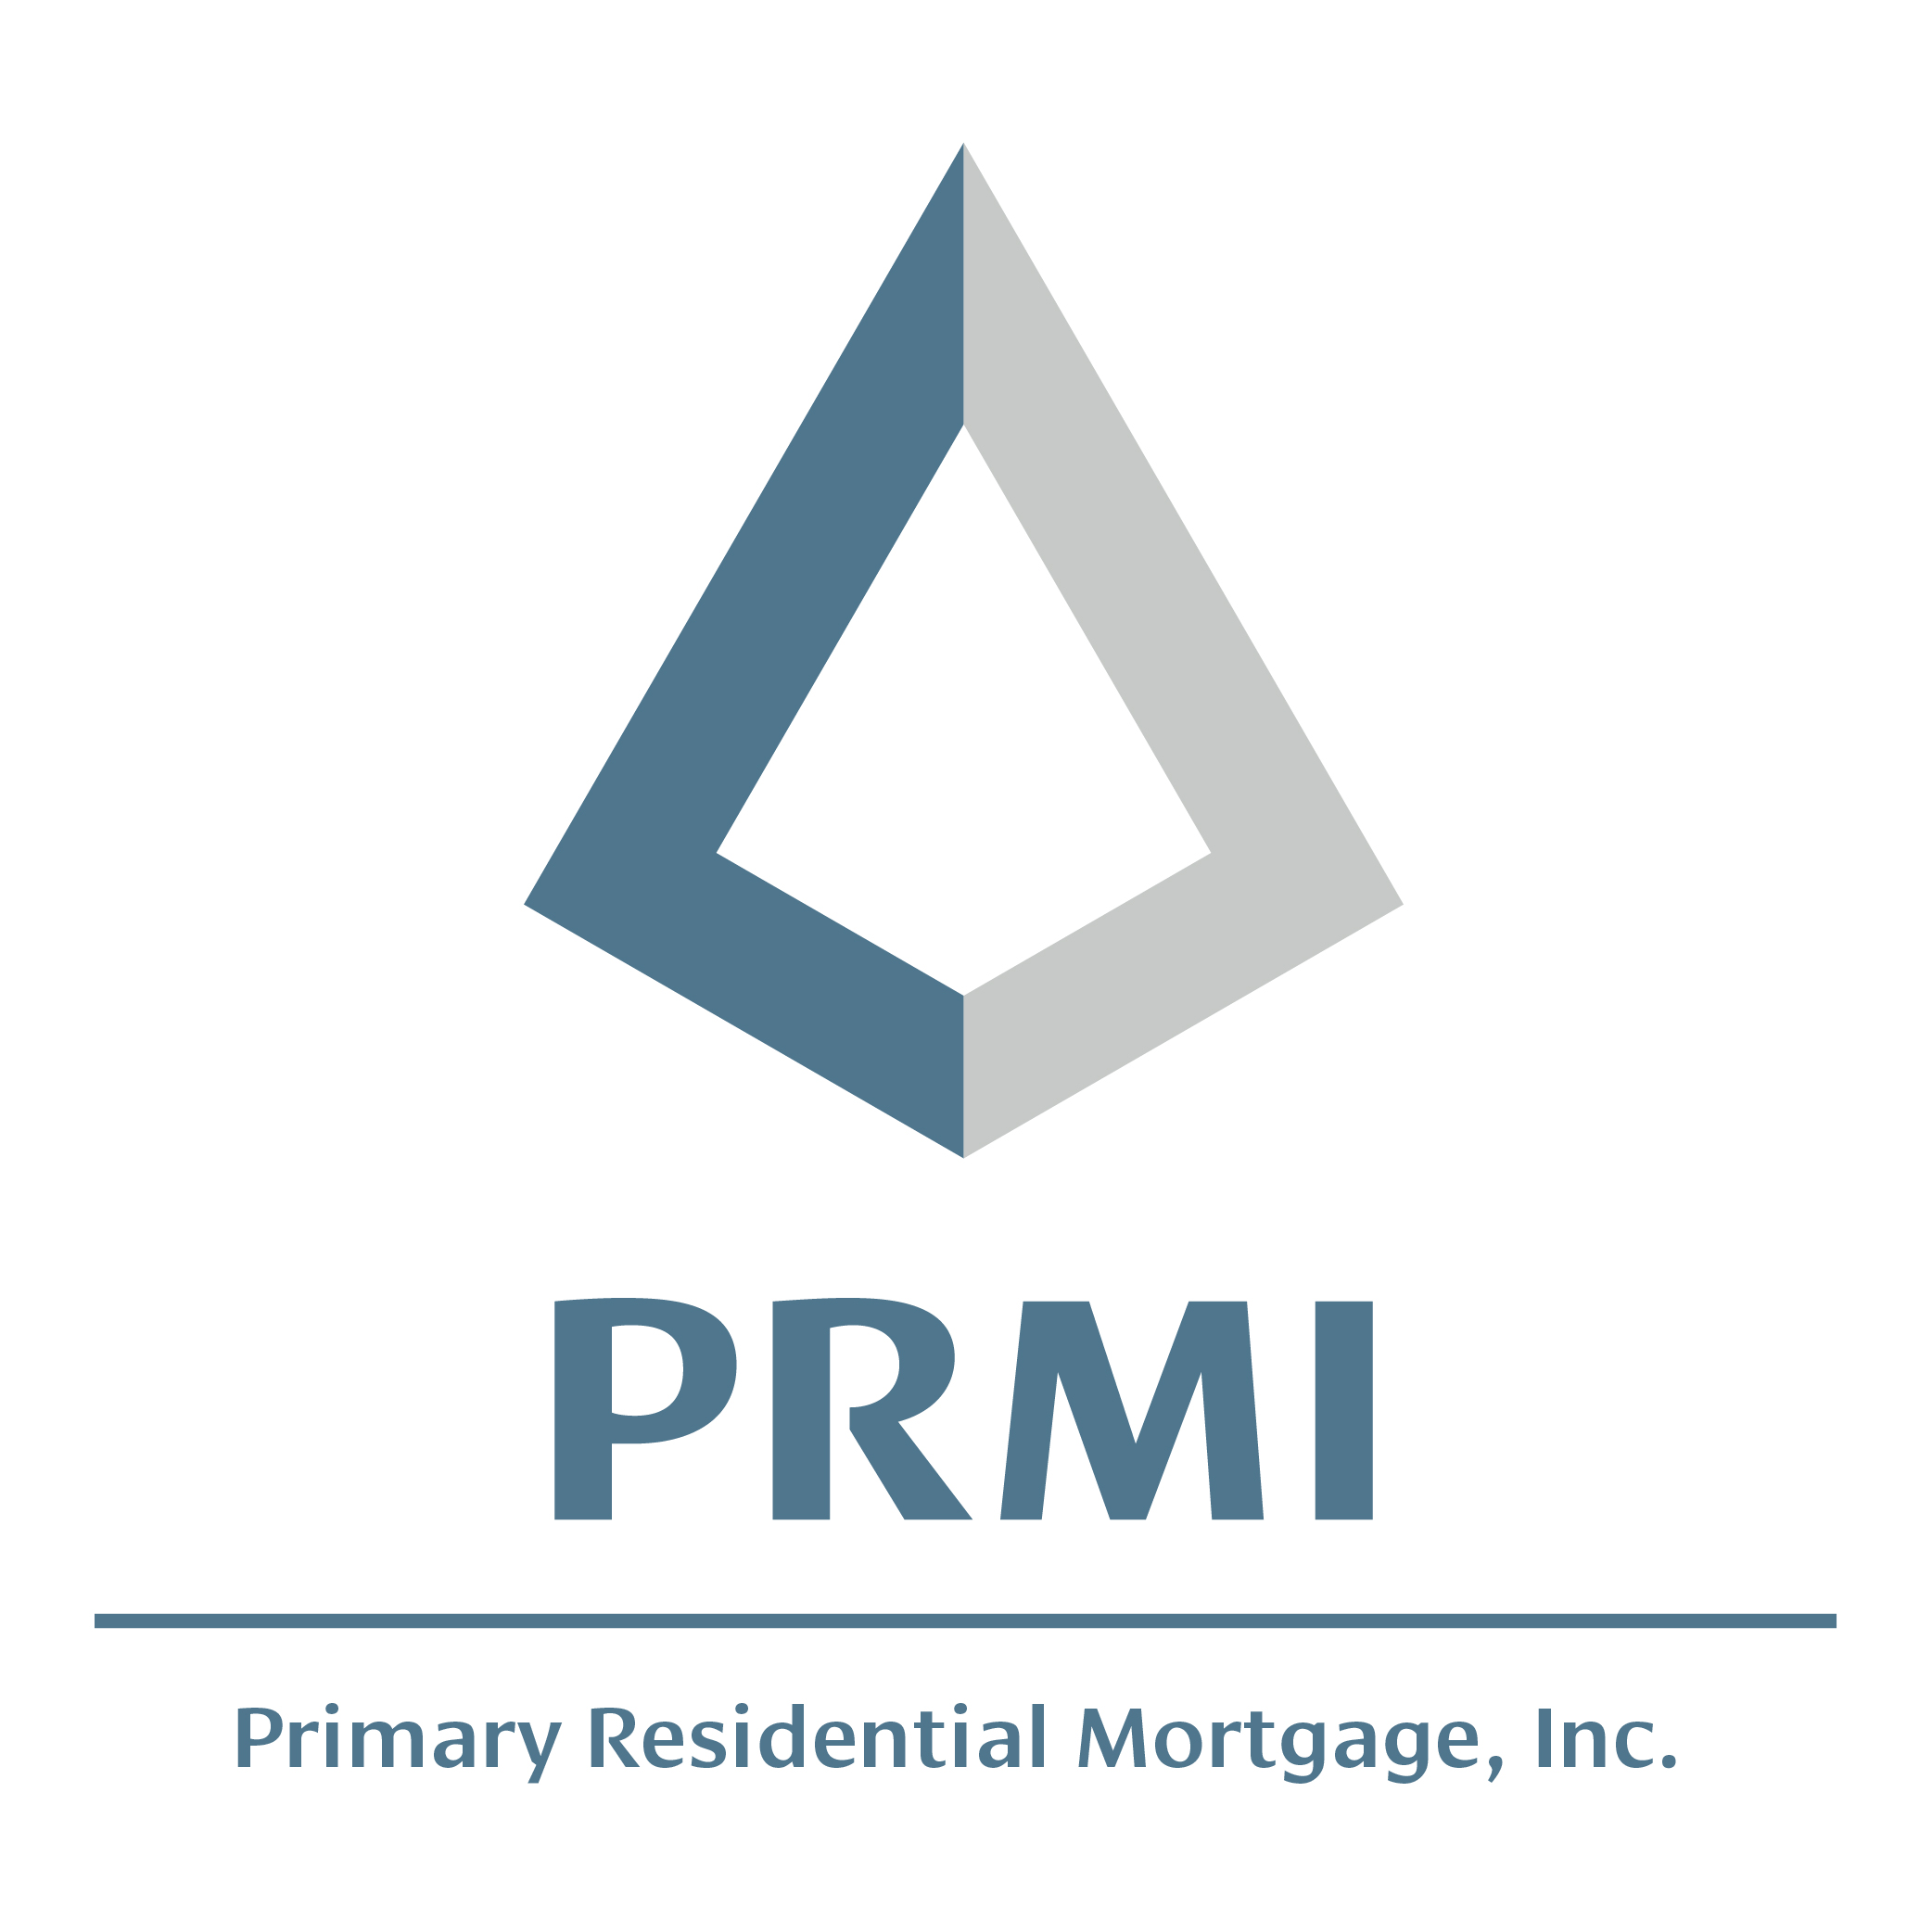 Primary Residential Mortgage, Inc. - Mountain Ranch, CA 95246 - (209)754-9412 | ShowMeLocal.com